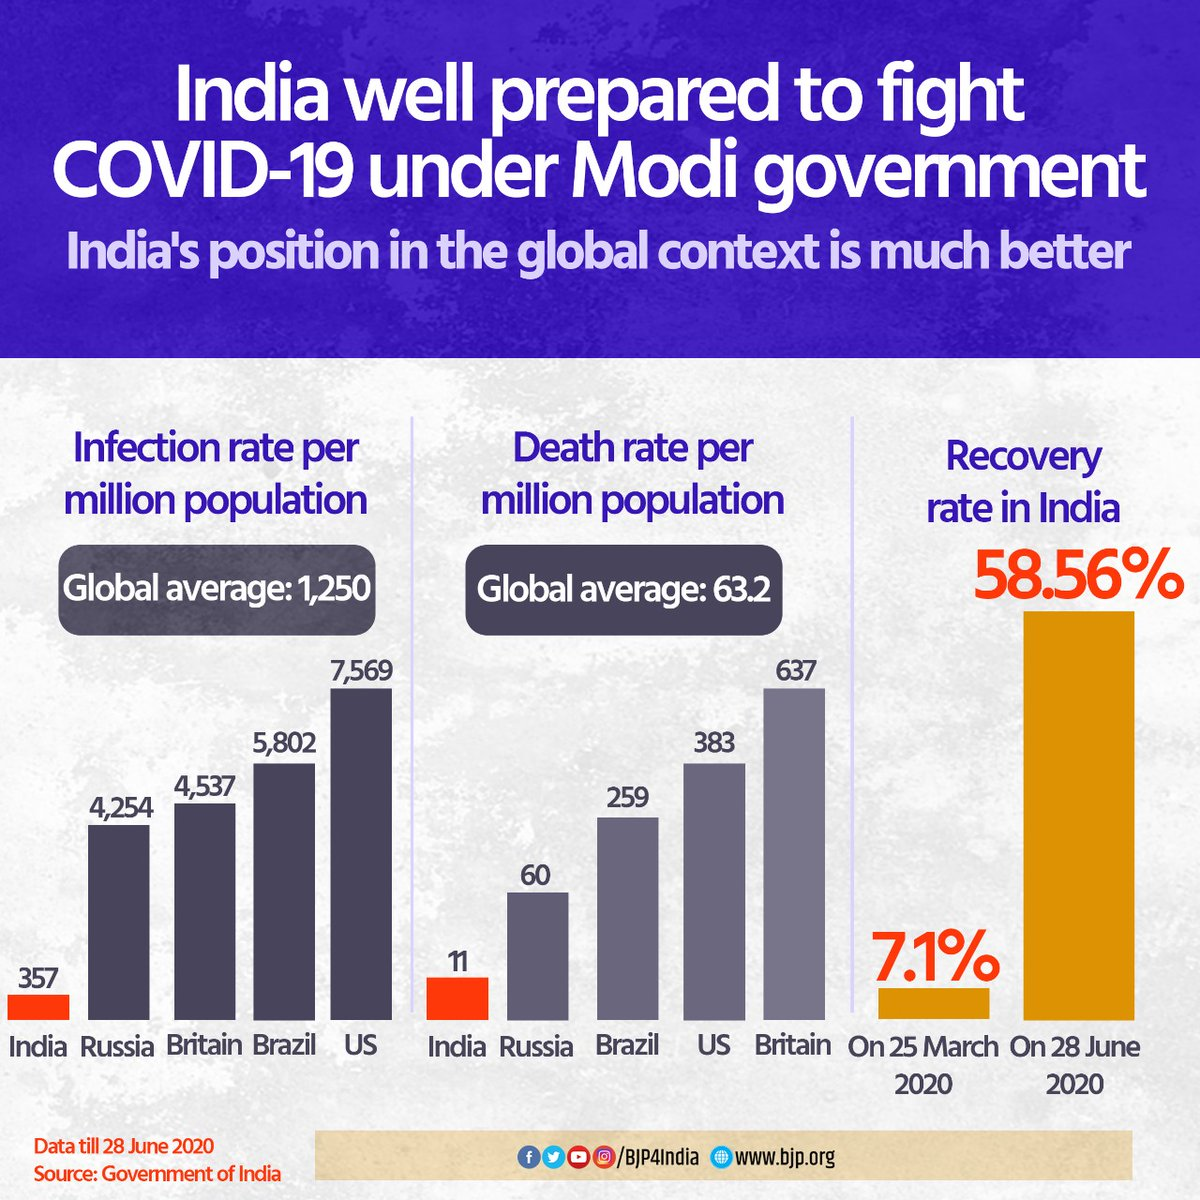 India's position in the global context in the fight against COVID-19 is much better than other countries. #IndiaFightsCorona